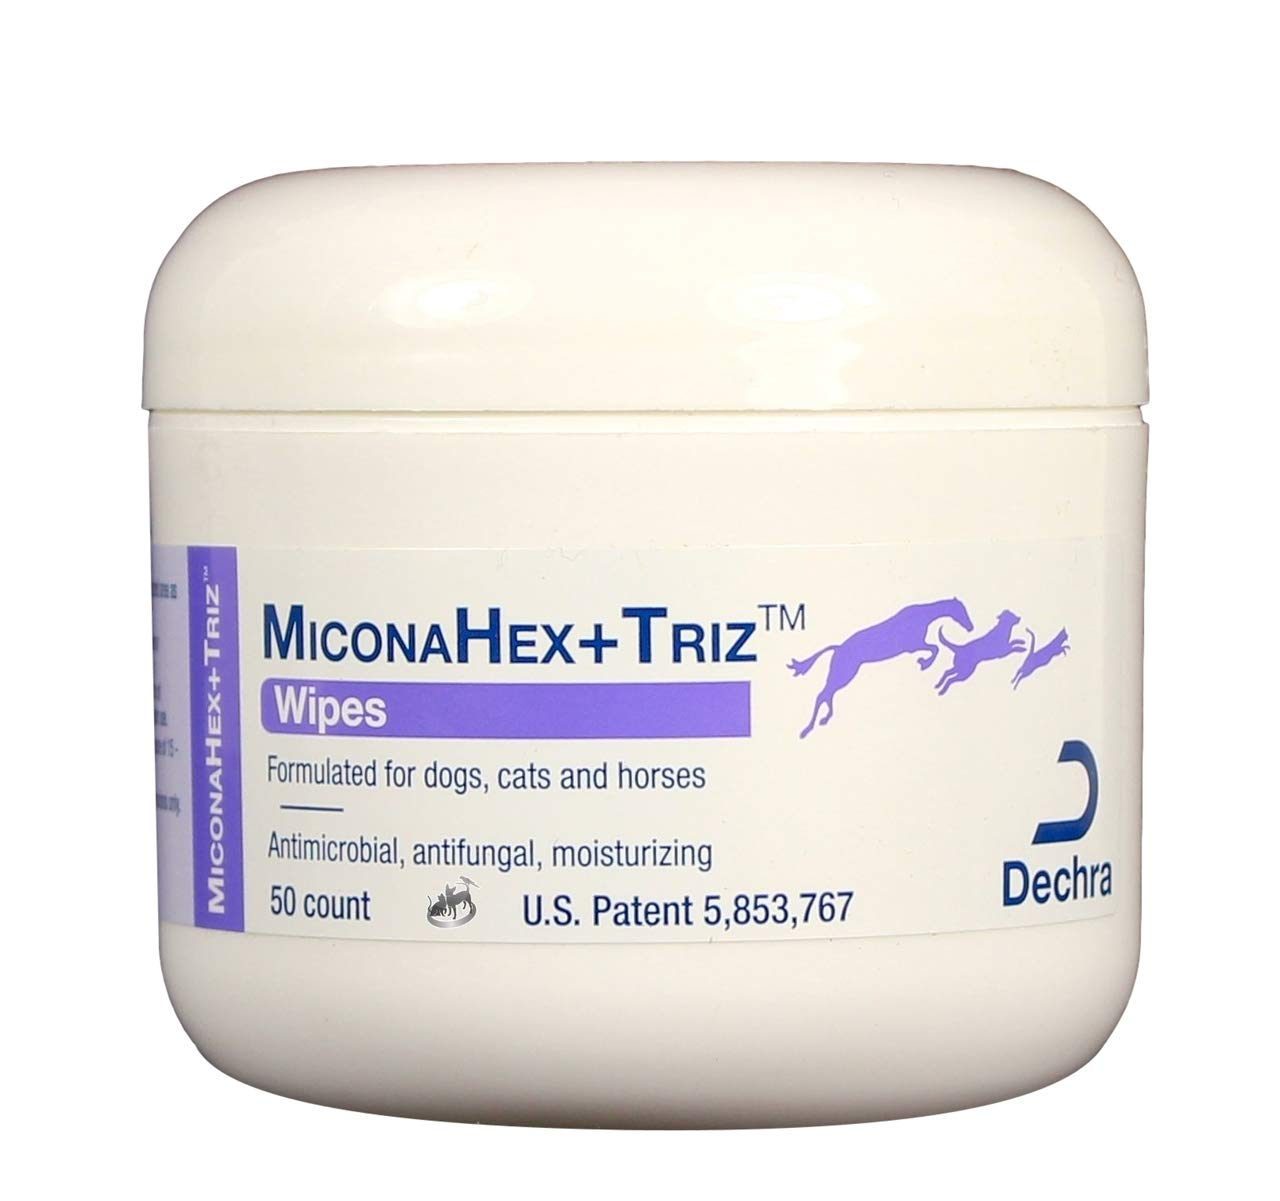 Dechra Miconahex +Triz Pet Wipes Anti-bacterial and anti-fungal properties 50ct